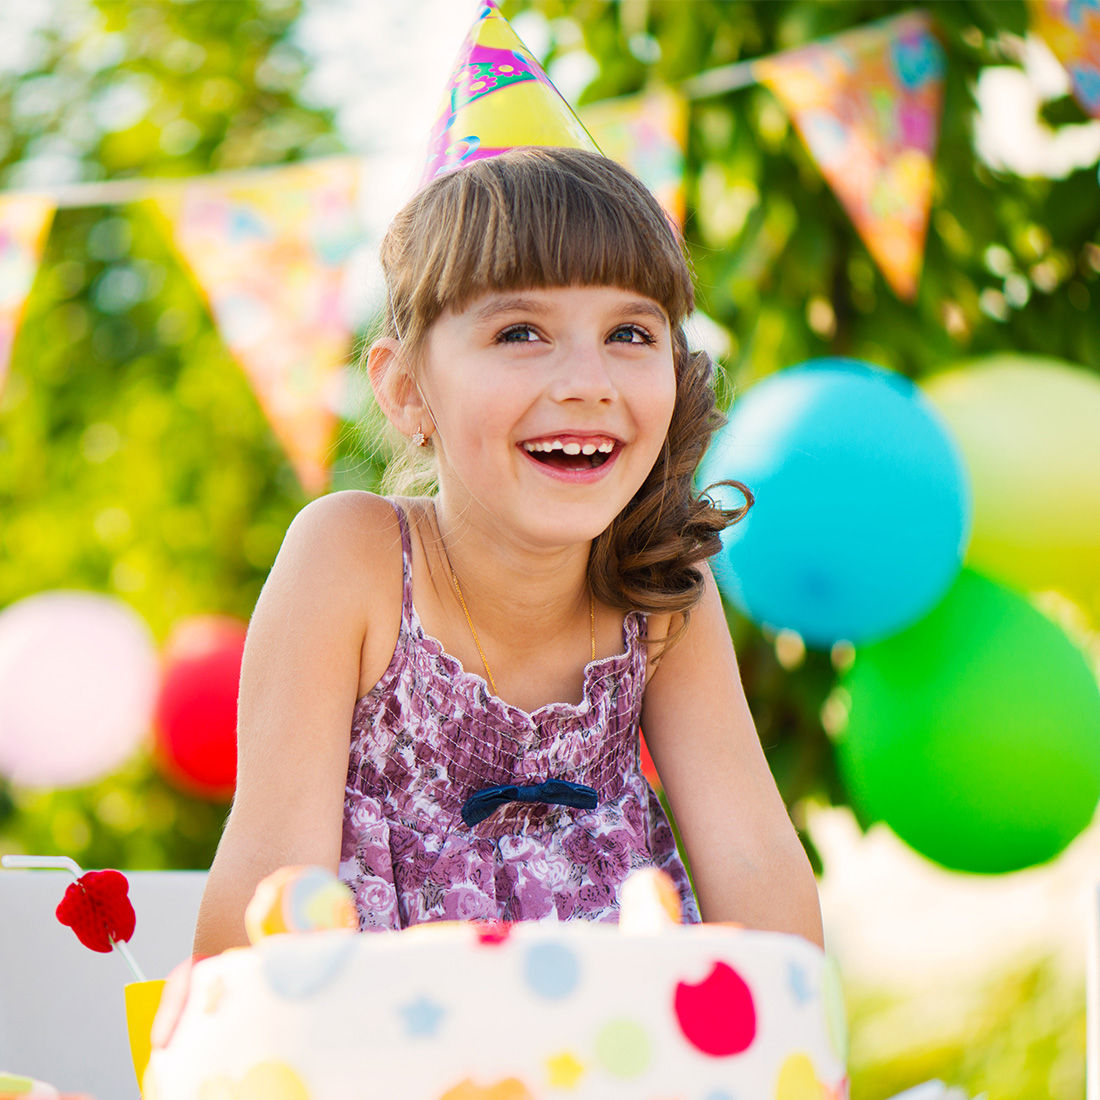 Are You Celebrating Half Birthdays?